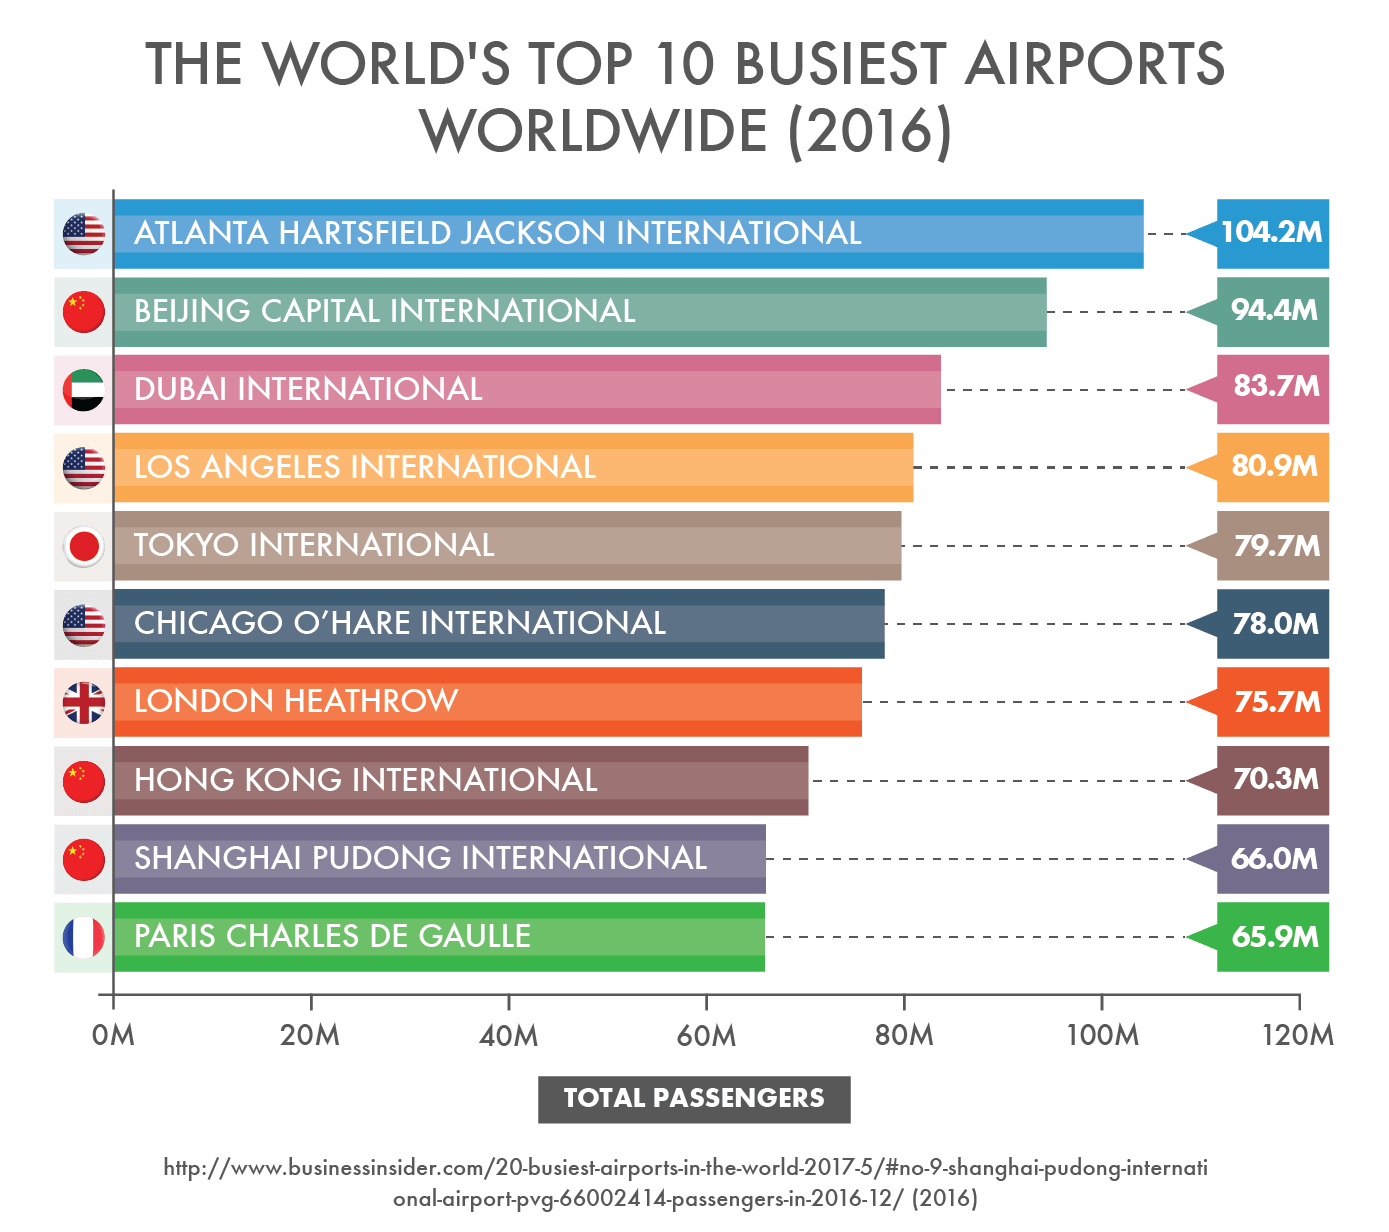 The World's Top 10 Busiest Airports Worldwide (2016)